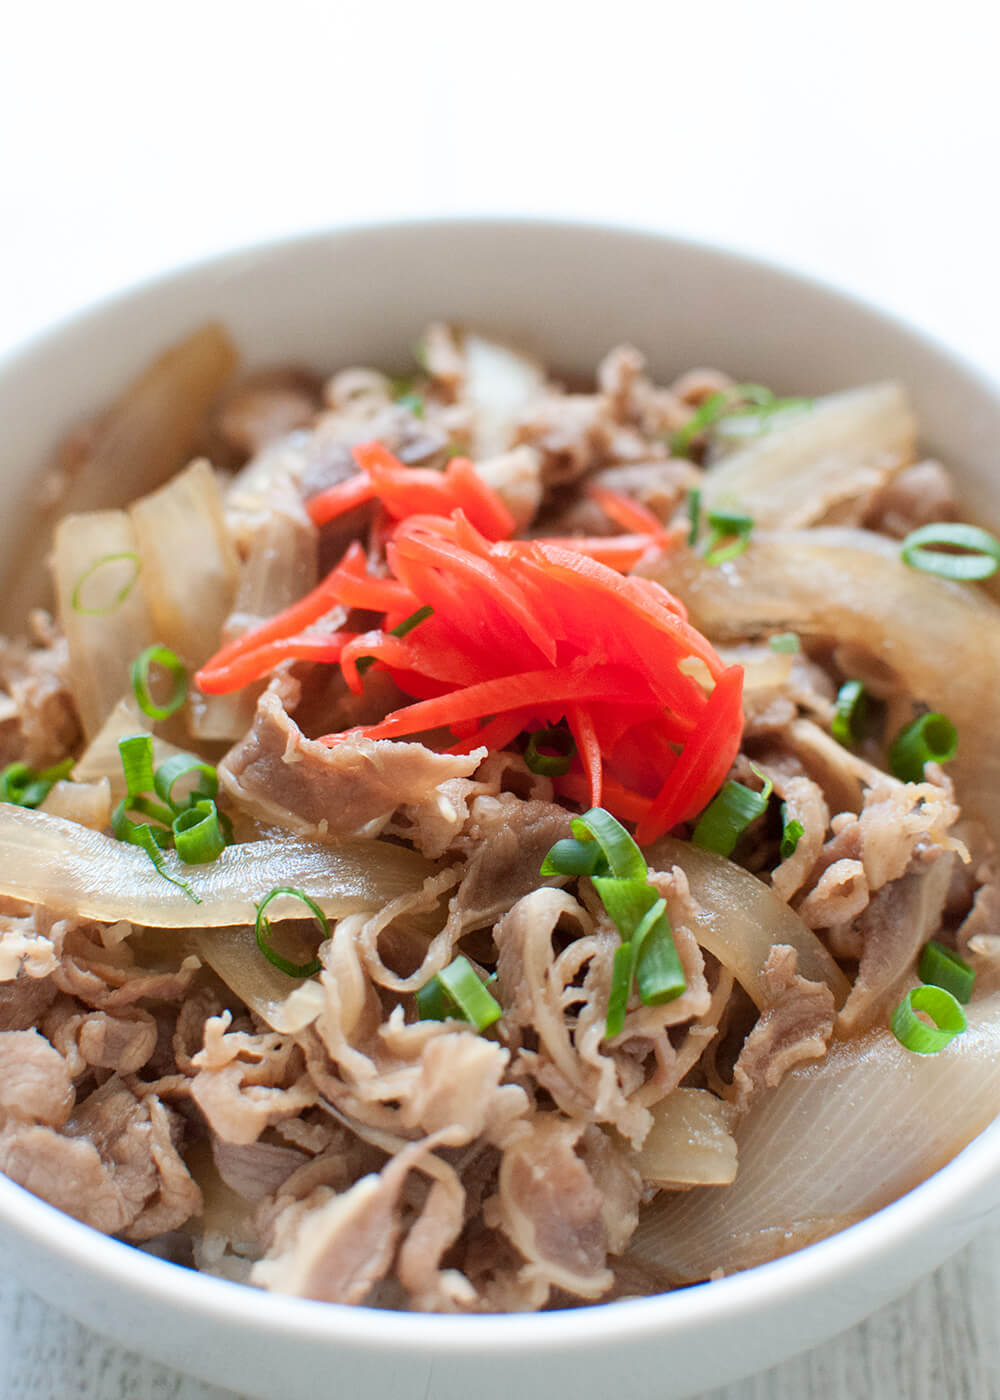 Japanese Beef bowl (Gyū-don) is a popular one-bowl dishthat consists of a bowl of rice topped with thinly sliced beef and onions simmered in sweet soy-flavoured sauce. It is so quick to make, tasty and filling – a perfect mid-week family meal.